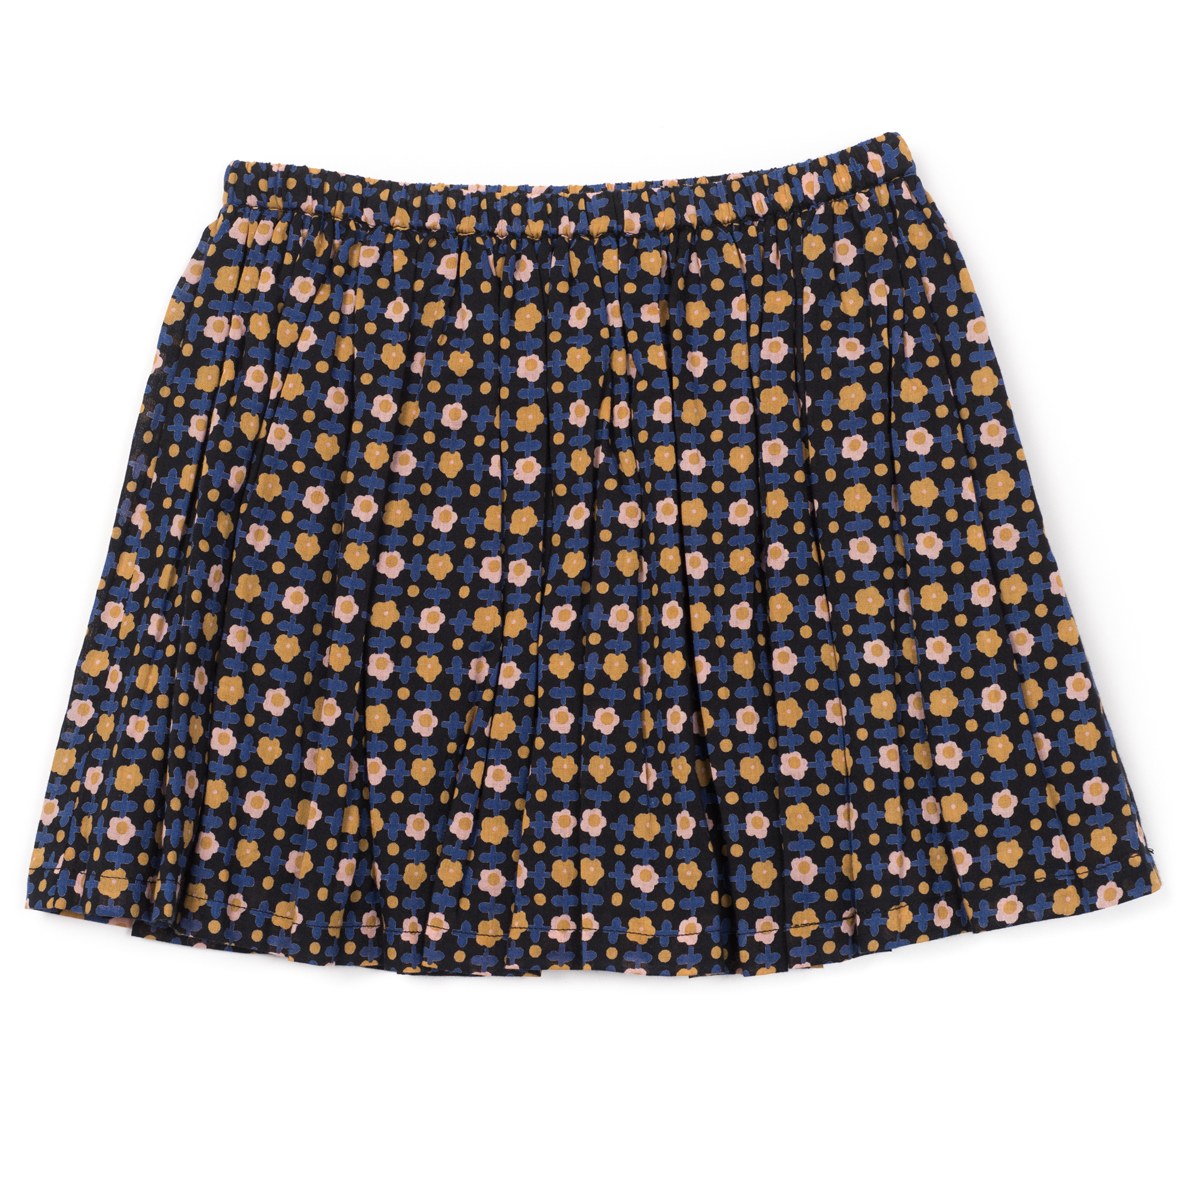 Bonton Flower Print Skirt